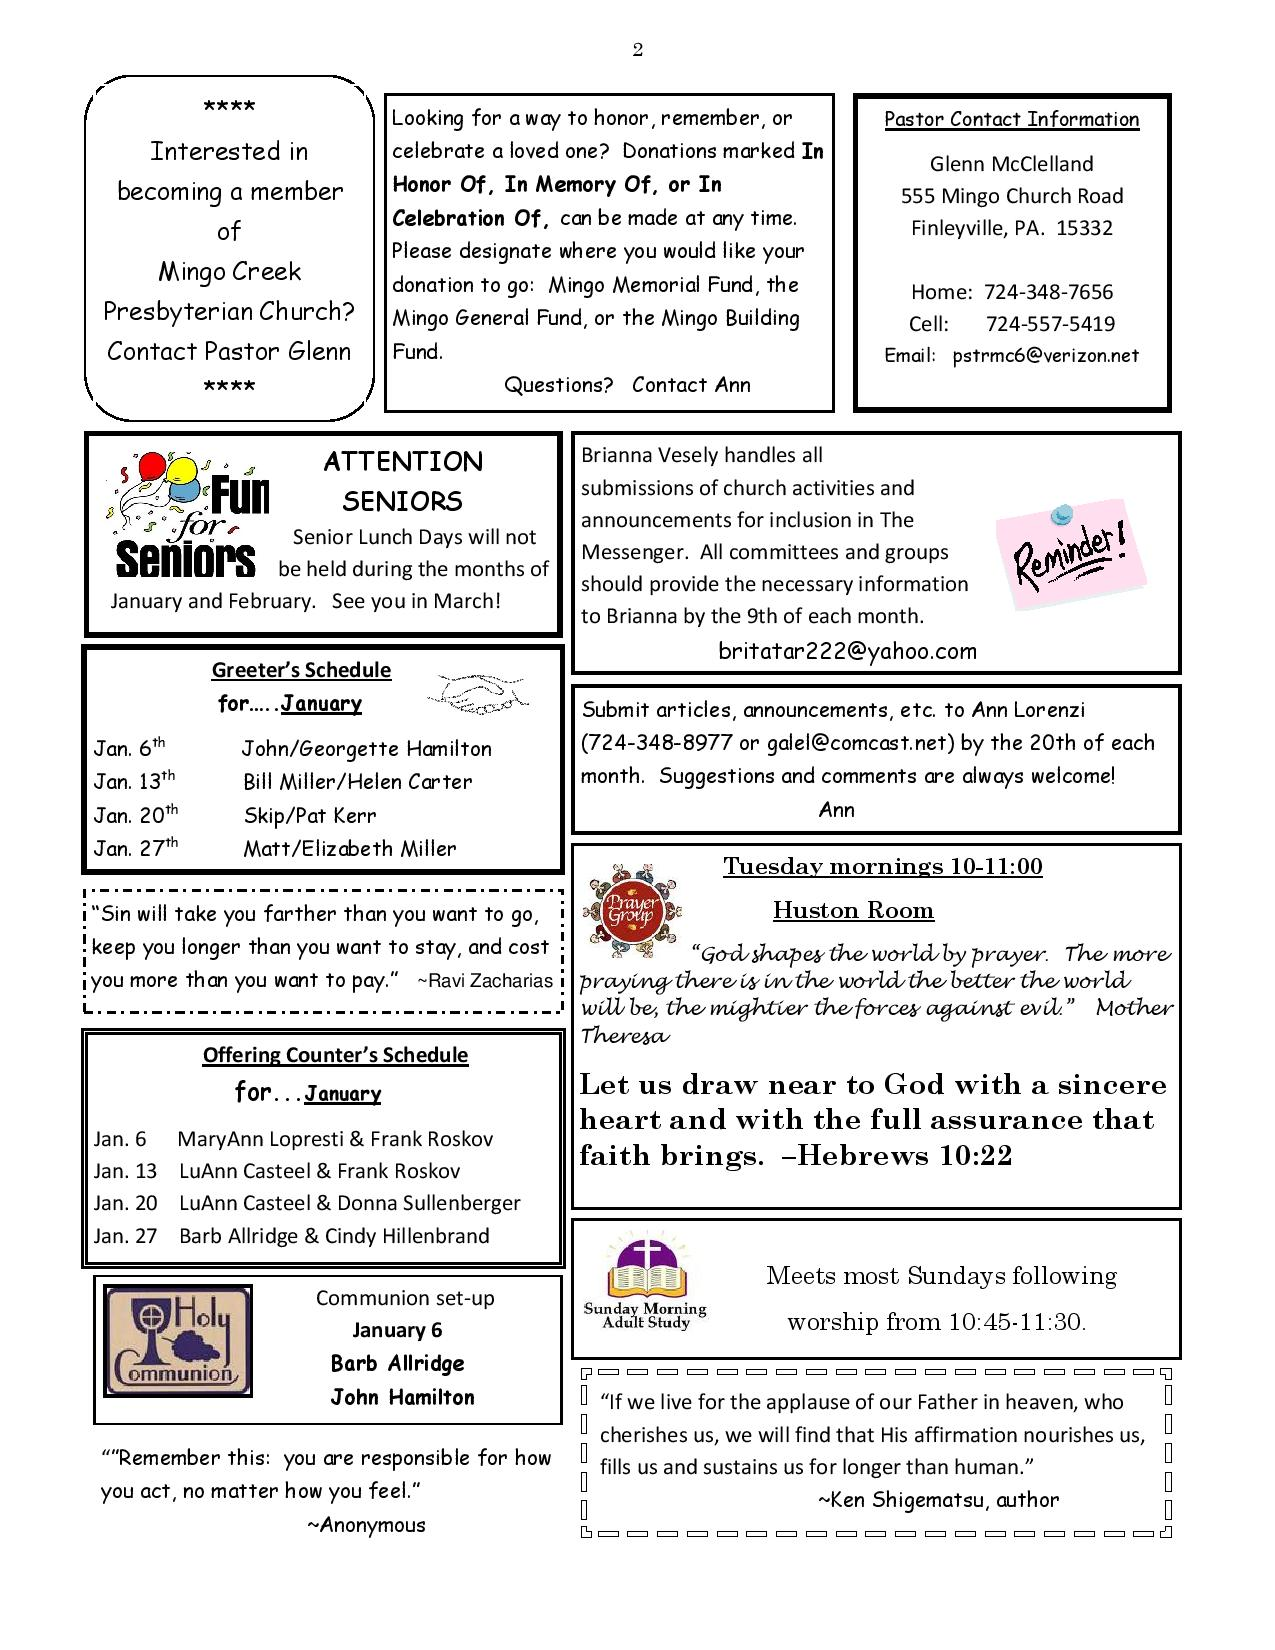 JANUARY NEWSLETTER (1)-page-002.jpg